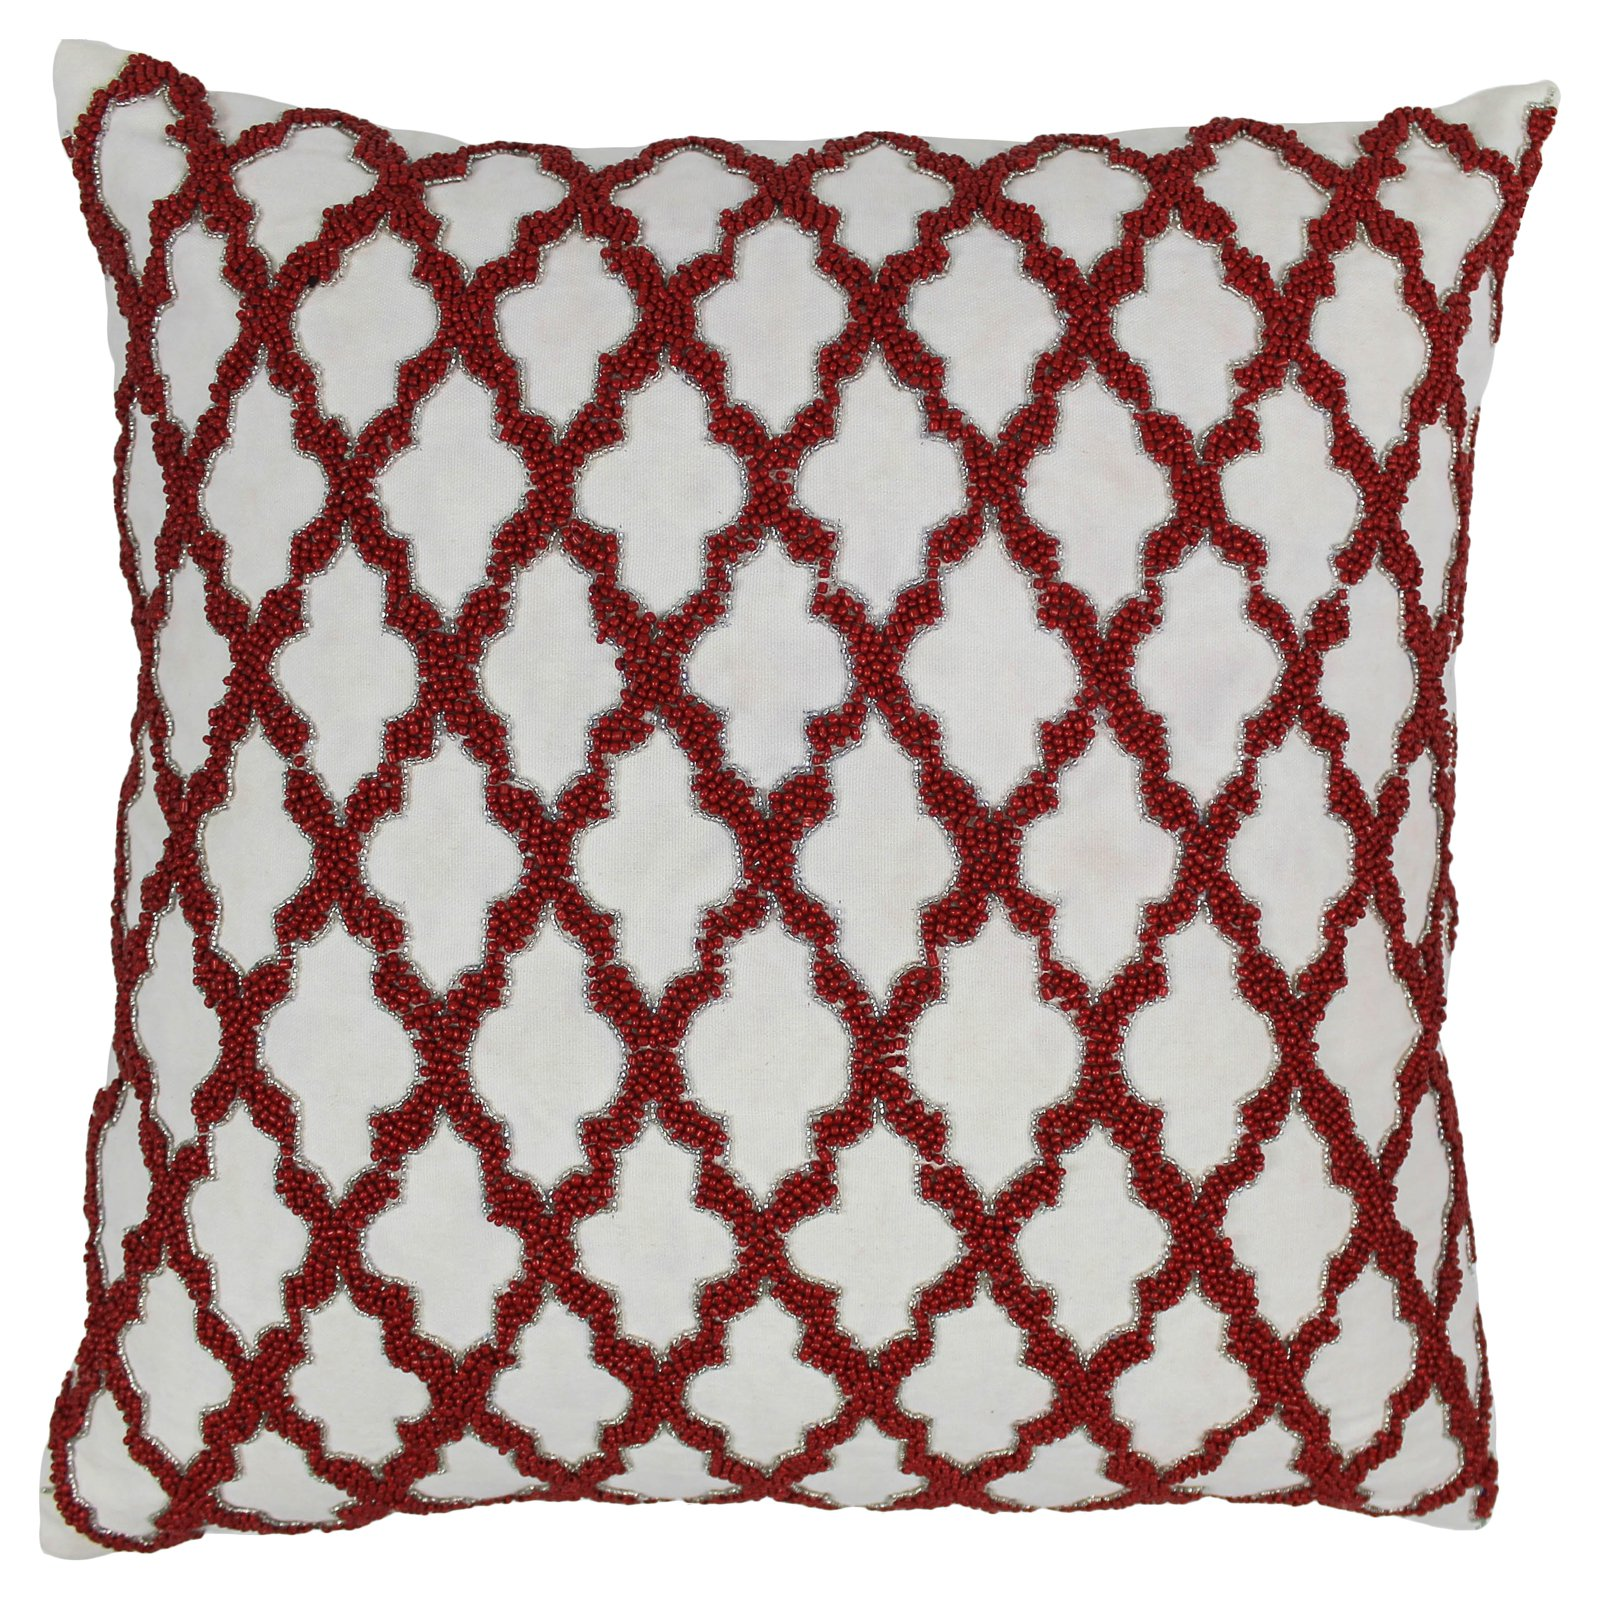 Blazing Needles 20 x 20 in. Moroccan Patterned Beaded Cotton Throw Pillow